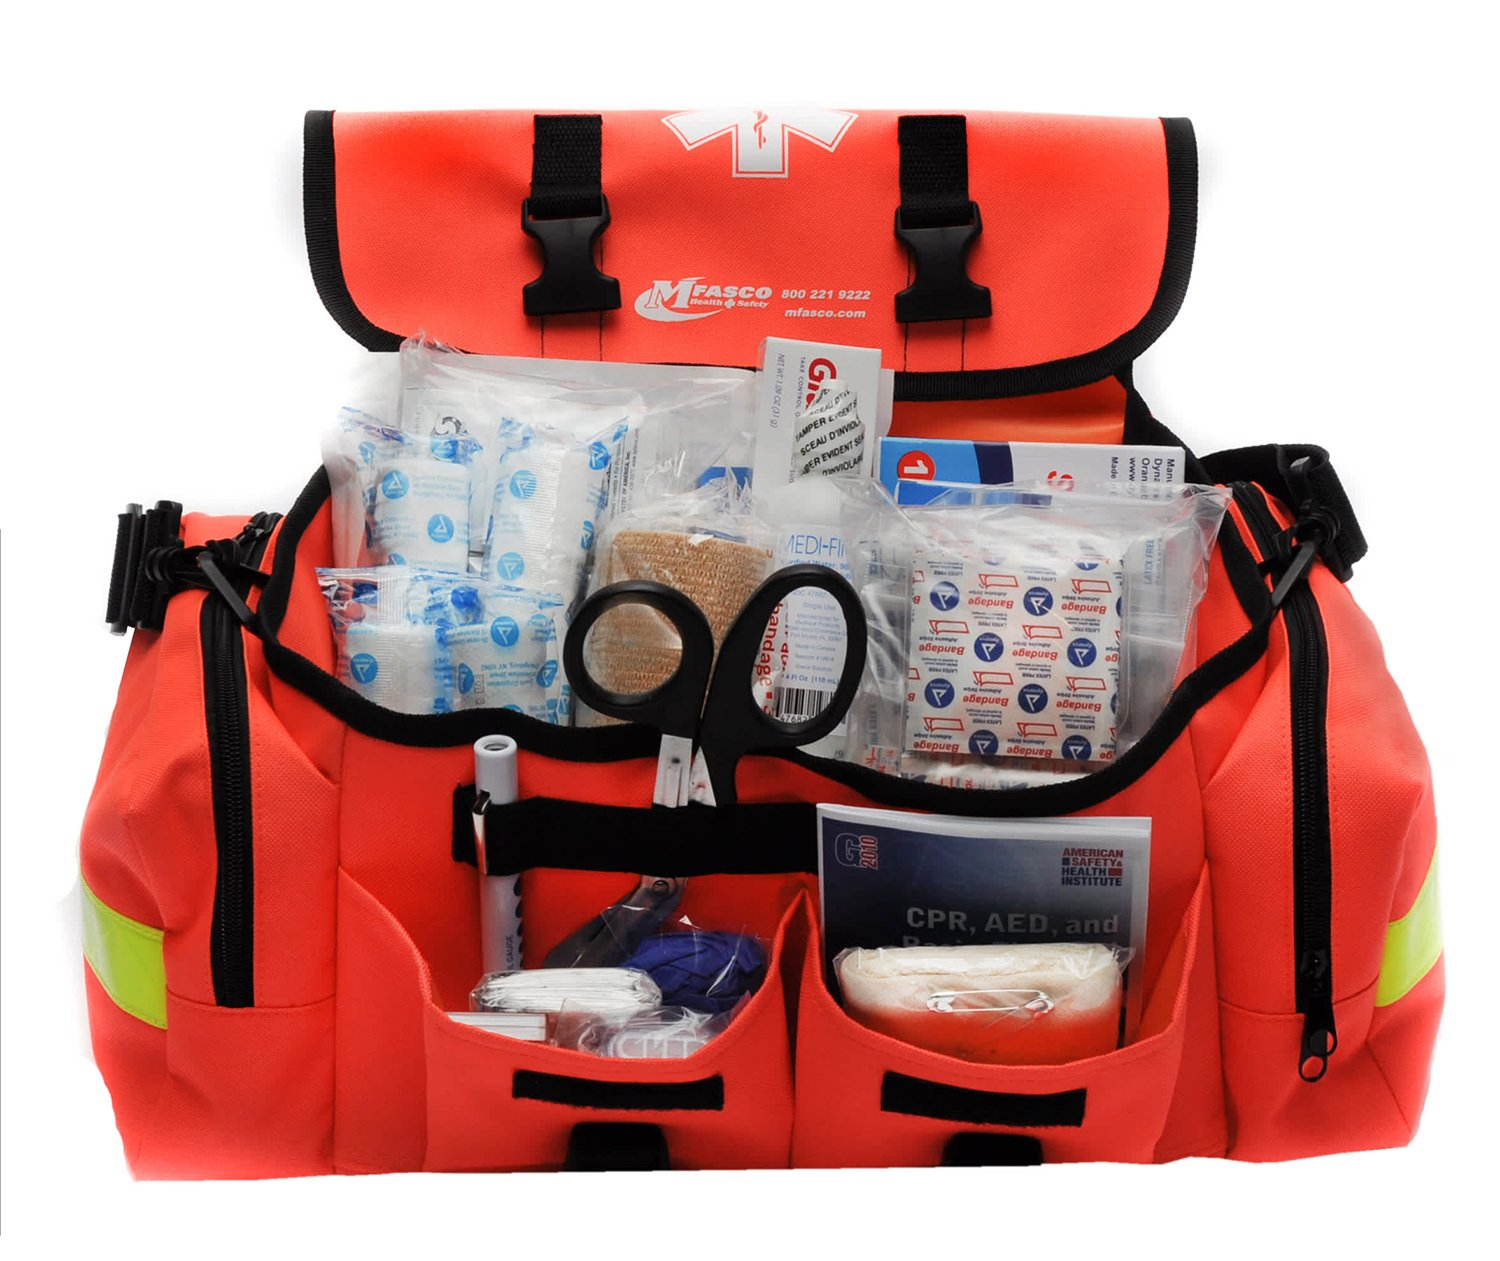 MFASCO - First Aid Kit - Complete Emergency Response Trauma Bag - for Natural Disasters - Orange by MFASCO